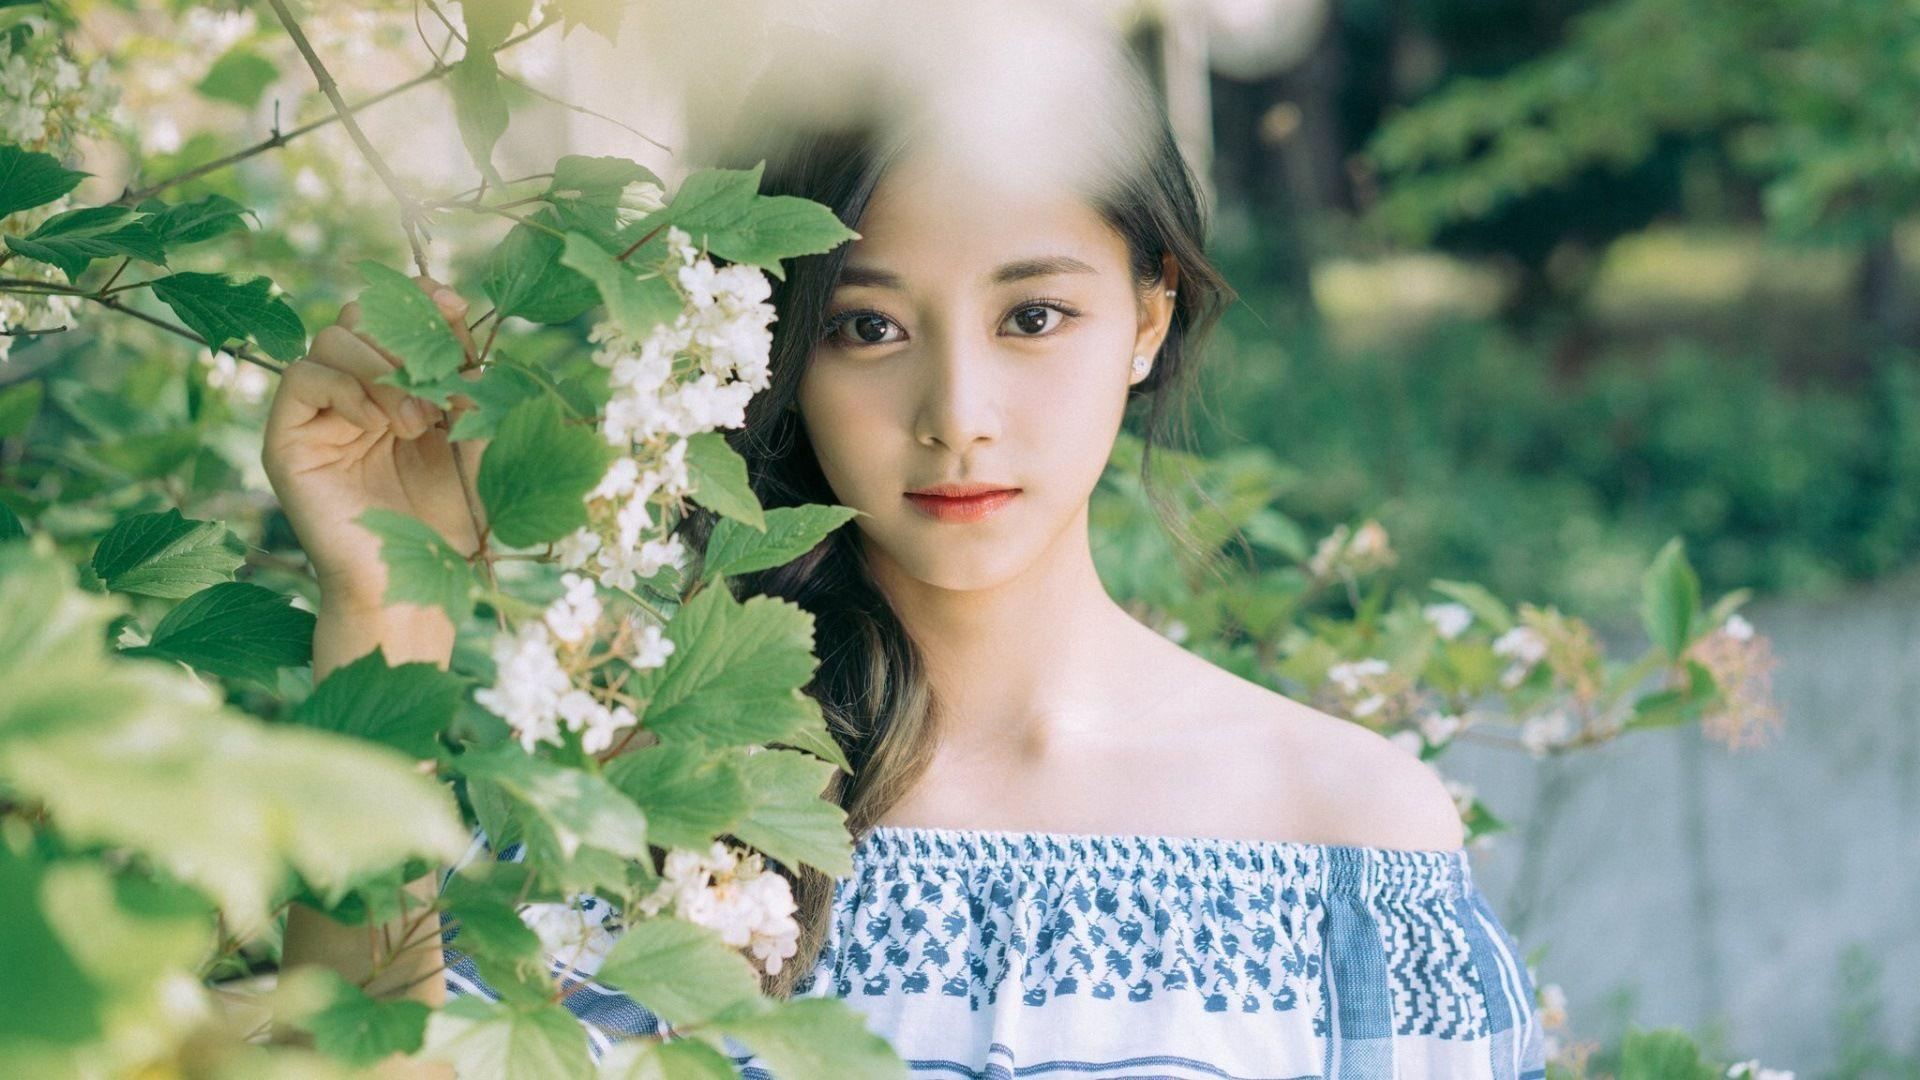 Tzuyu Twice Beautiful Girl Wallpapers